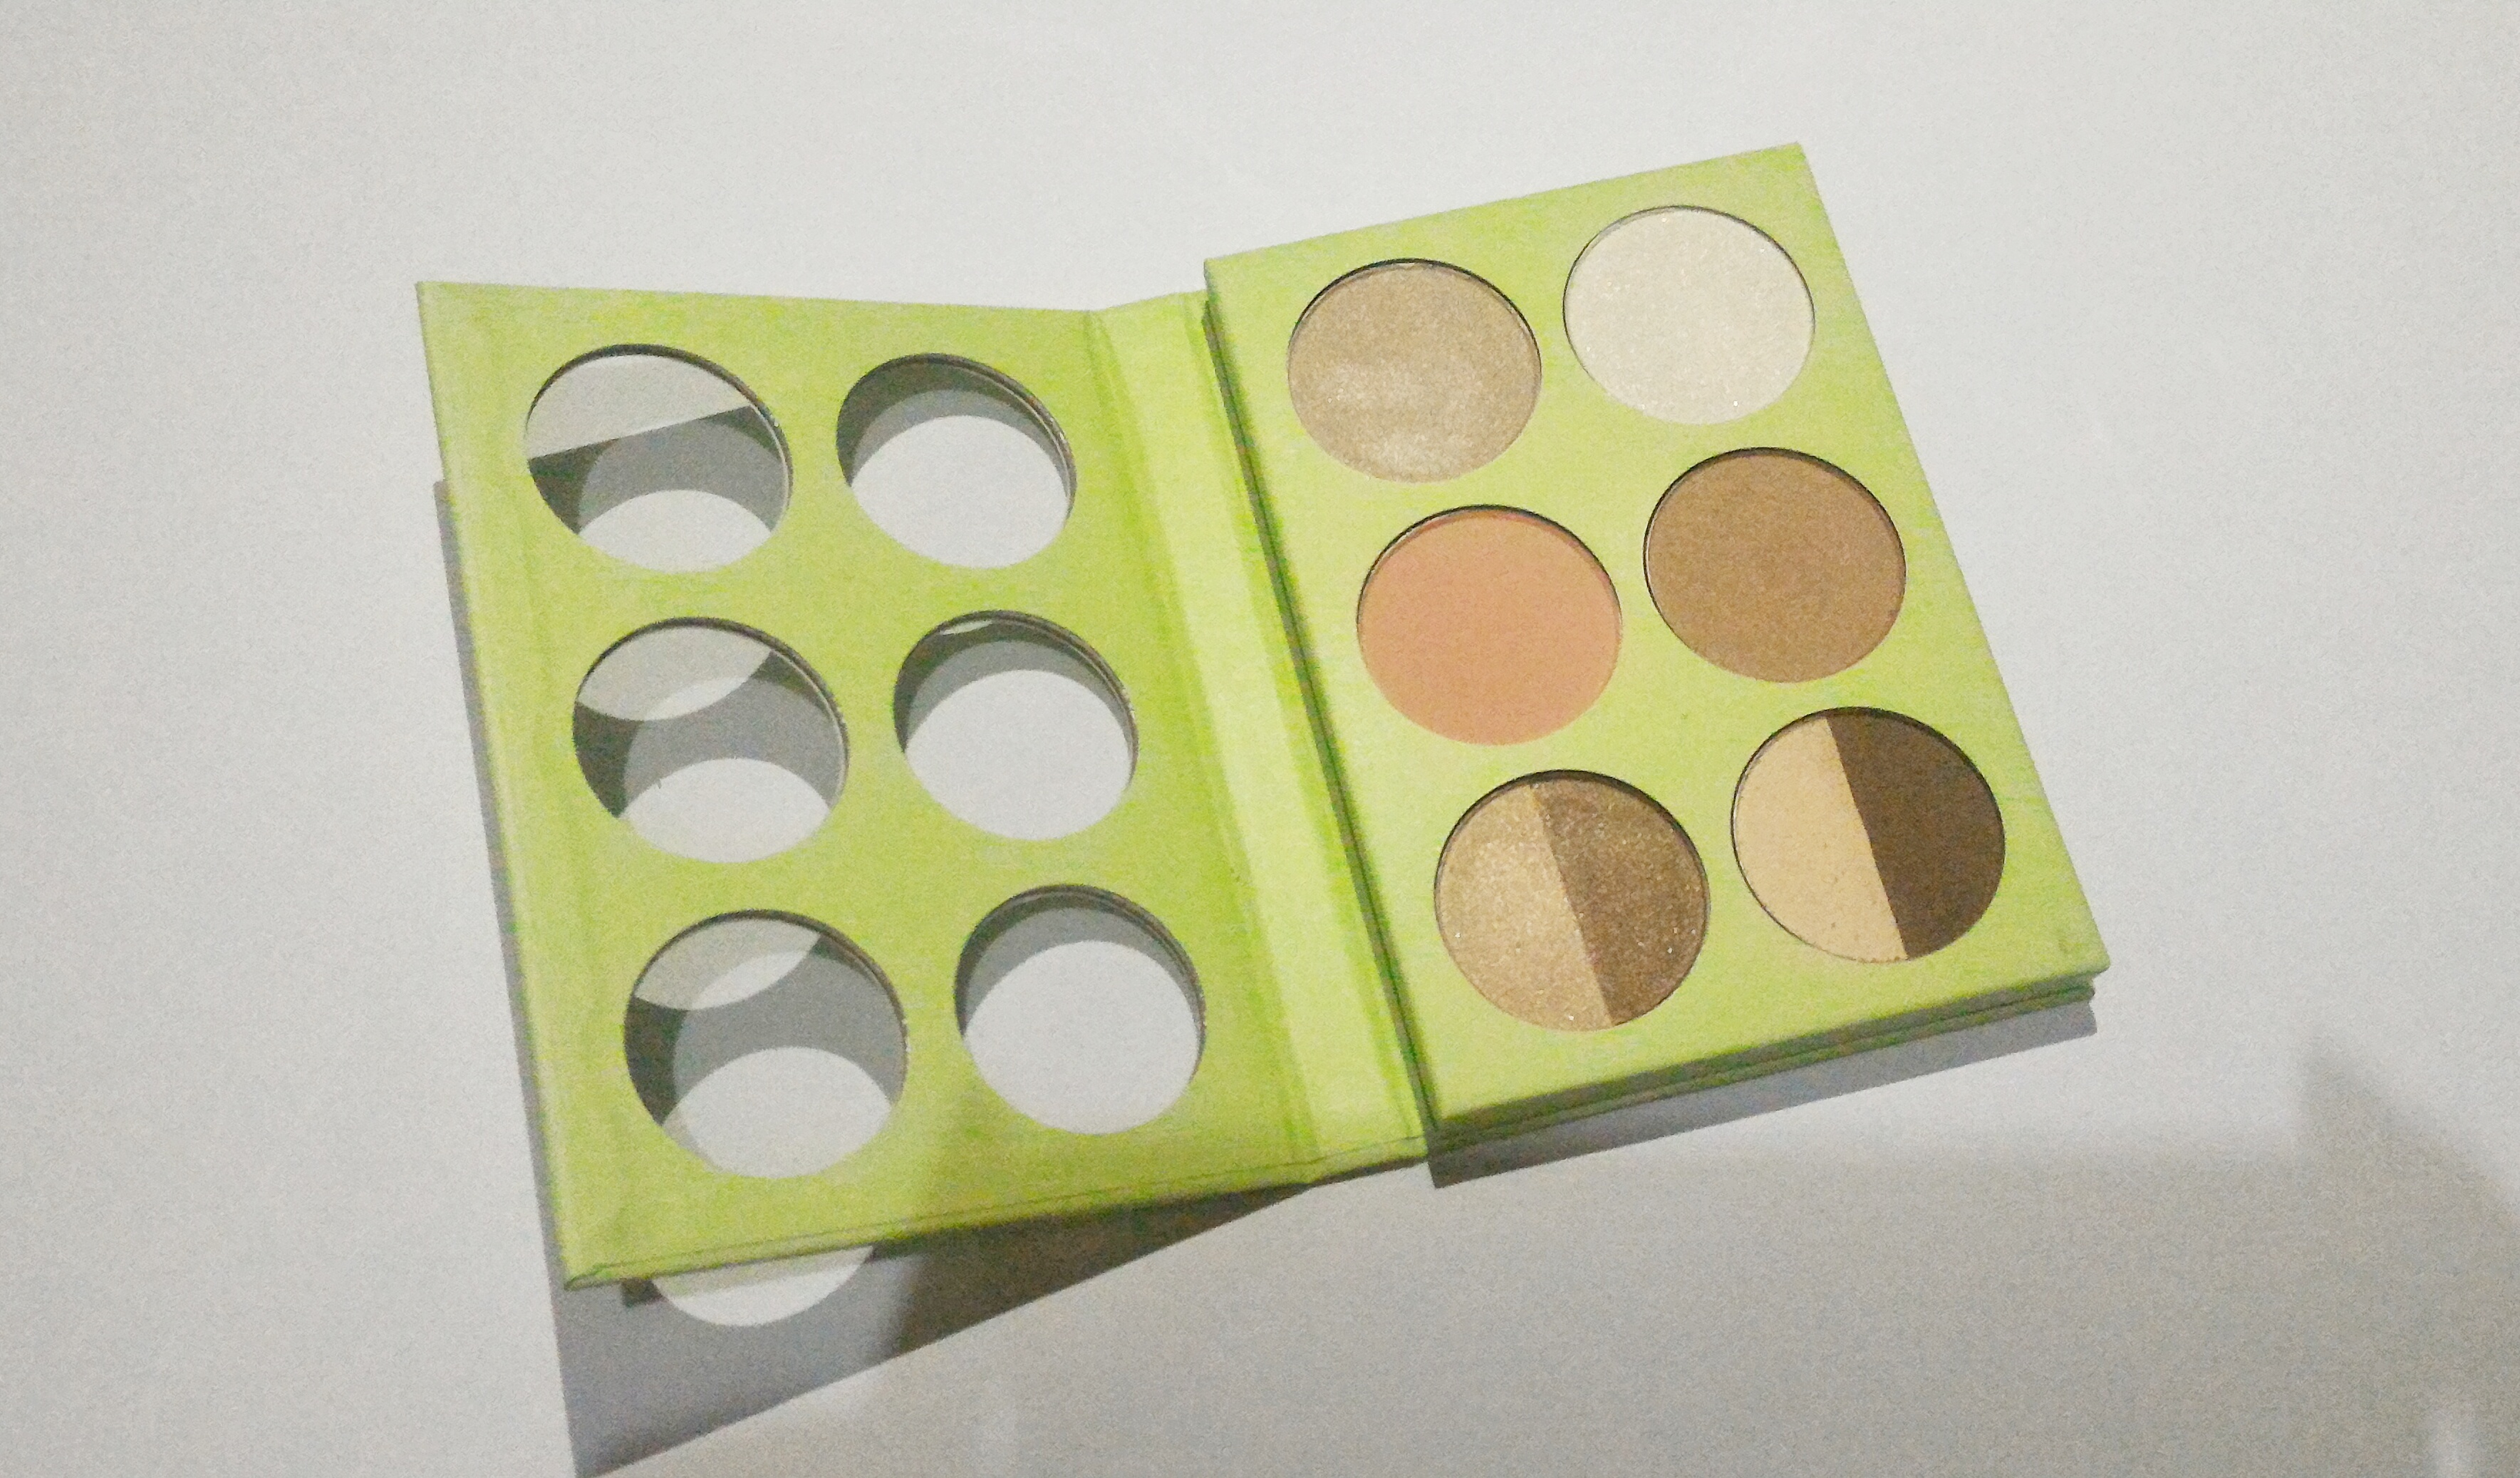 pixi-book-of-beauty-minimal-makeup-swatches-review